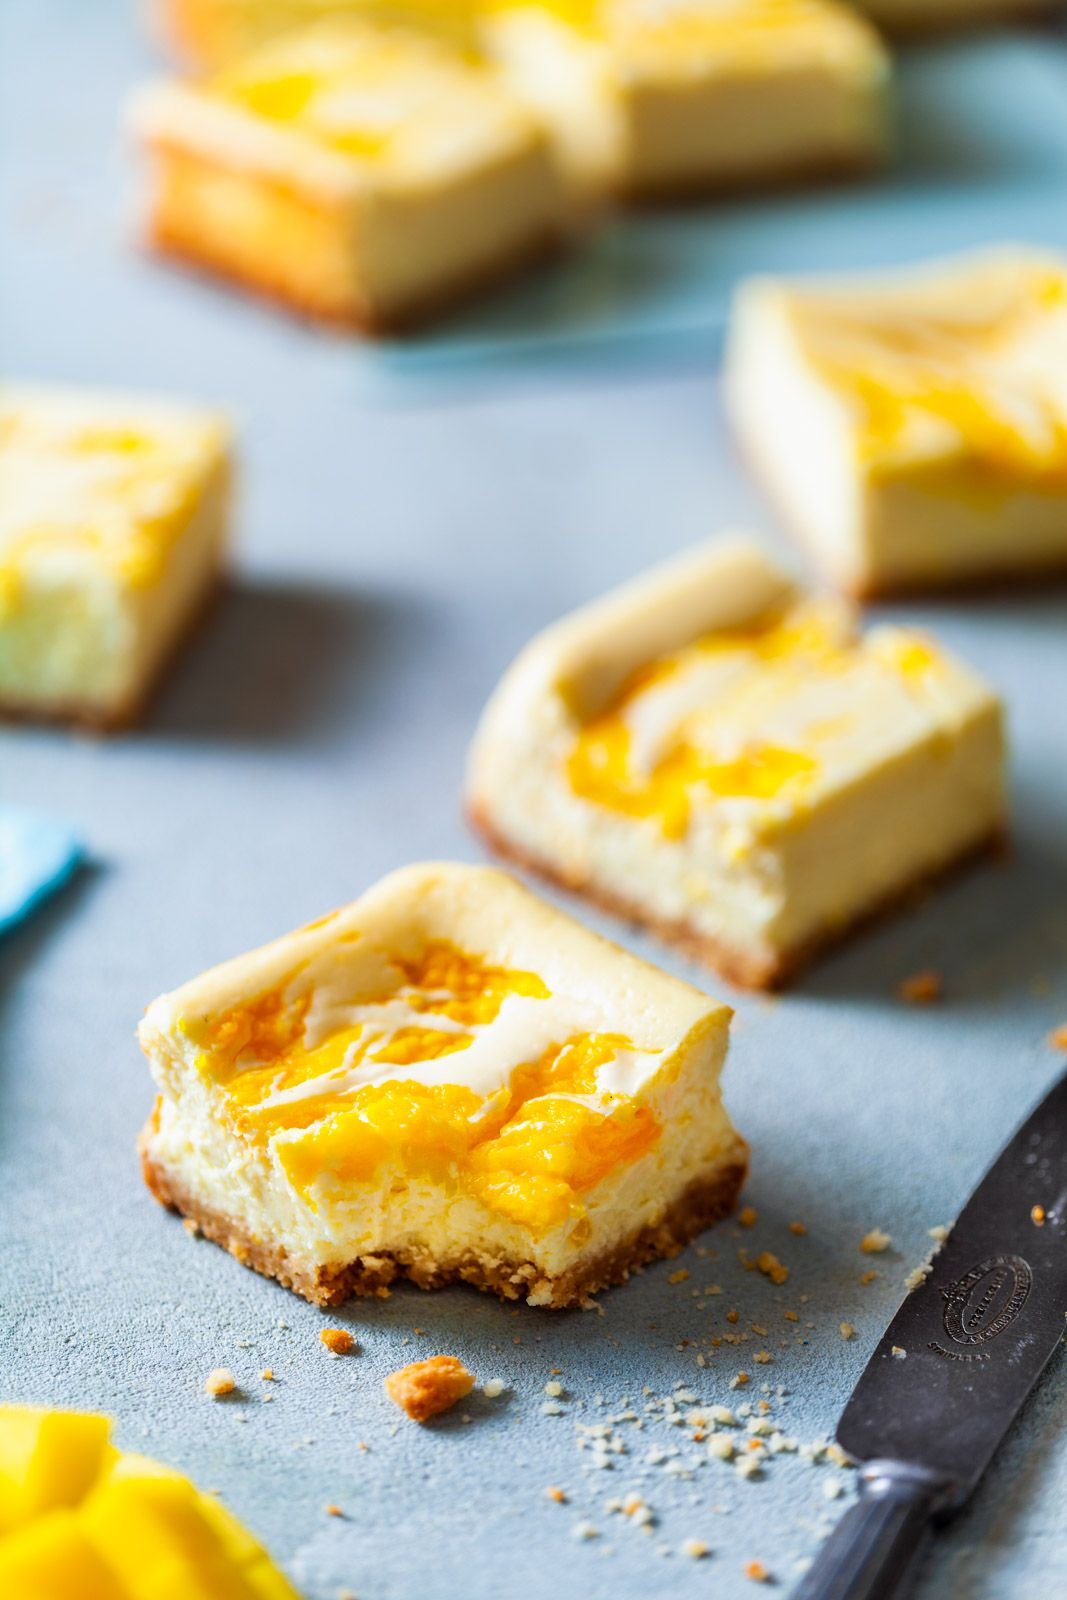 Mango Cheesecake Bars Rich And Creamy With A Sweet Mango Striped Throughout And A Coconut Cookie Crust Ma Mango Cheesecake Cheesecake Recipes Cheesecake Bars